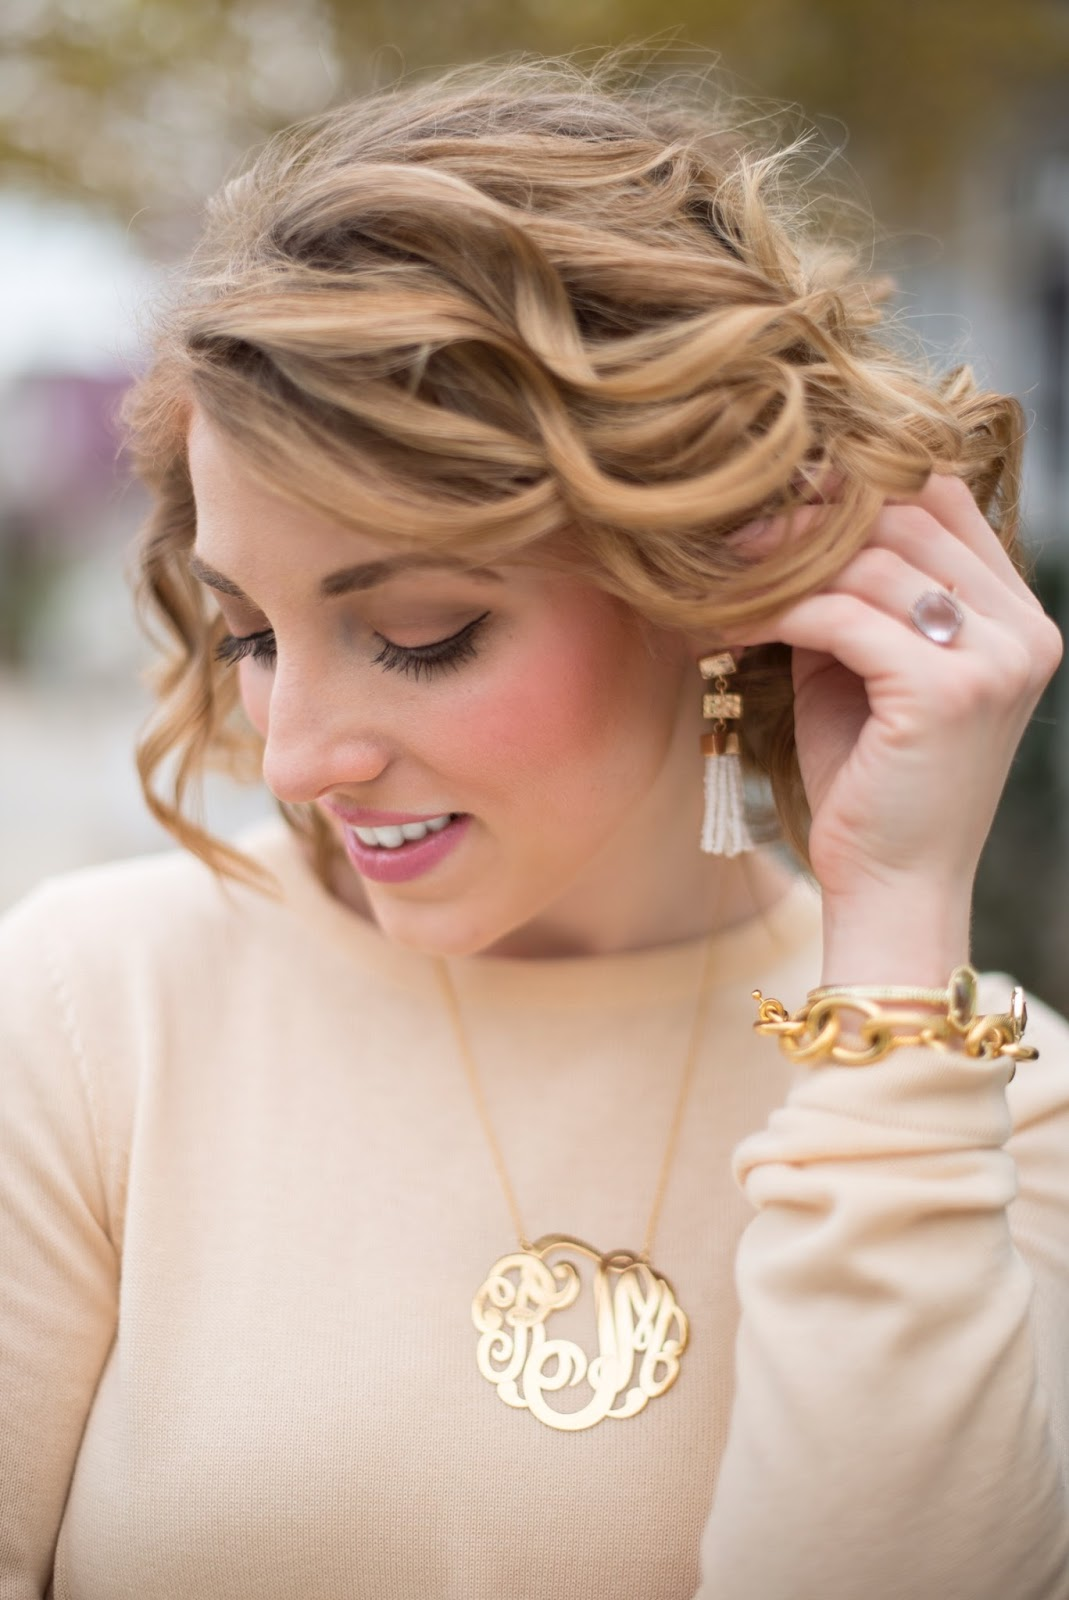 Extra-Large Monogram Necklace